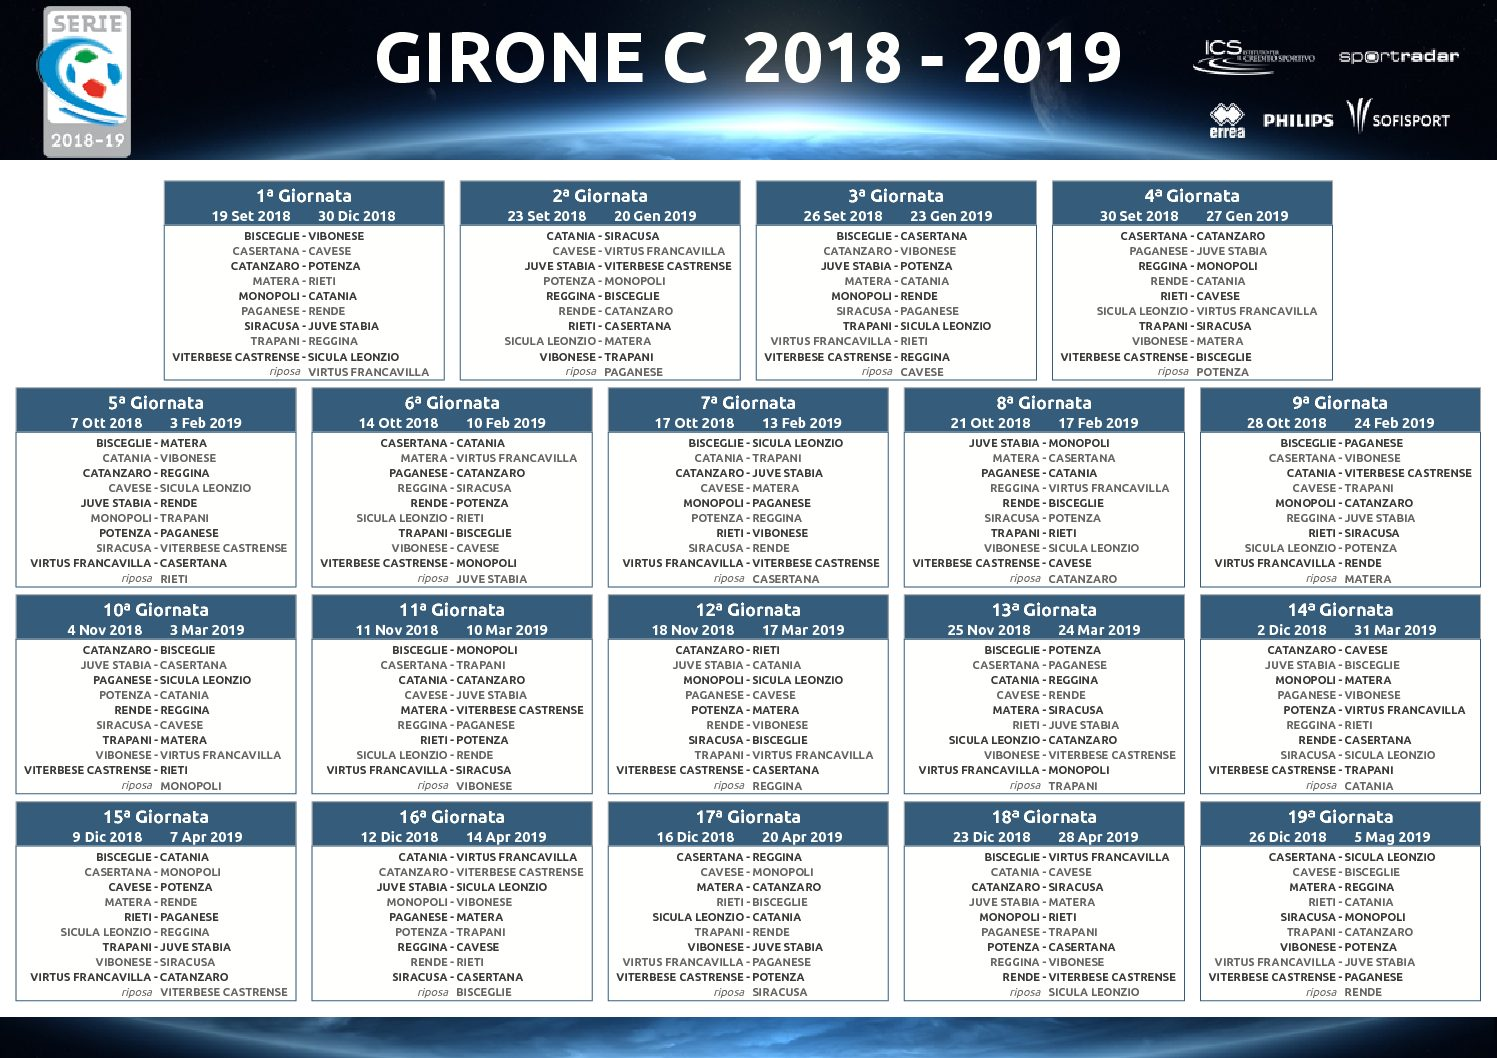 Calendario Reggina 2020.Salvatore Condemi Reggina Unico Amore